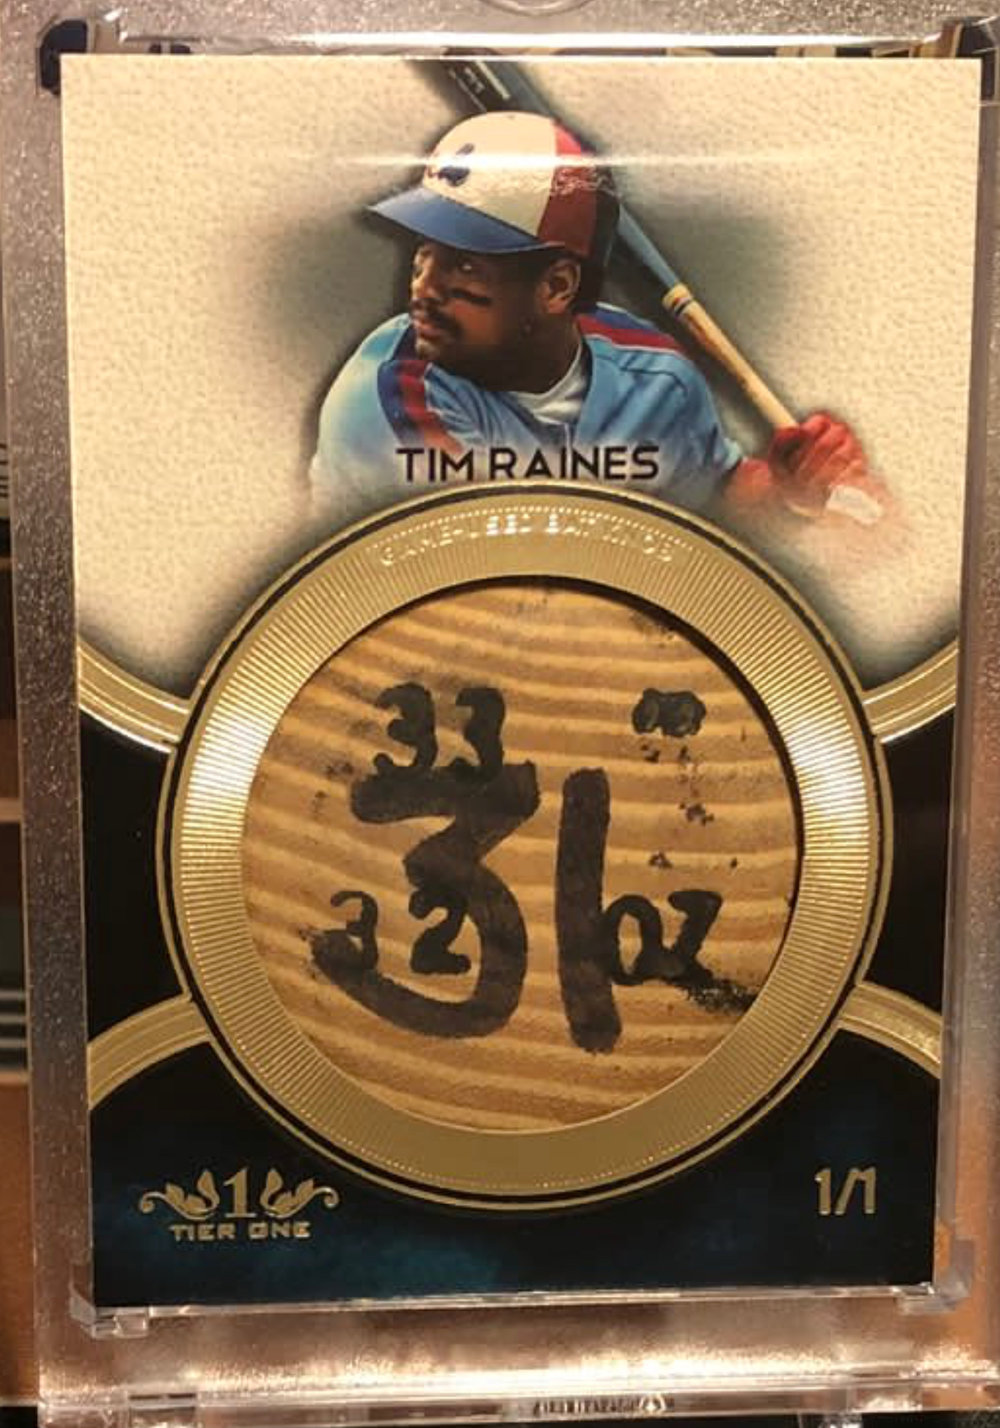 2018 Topps Tier One Bat Knob Tim Raines 1/1